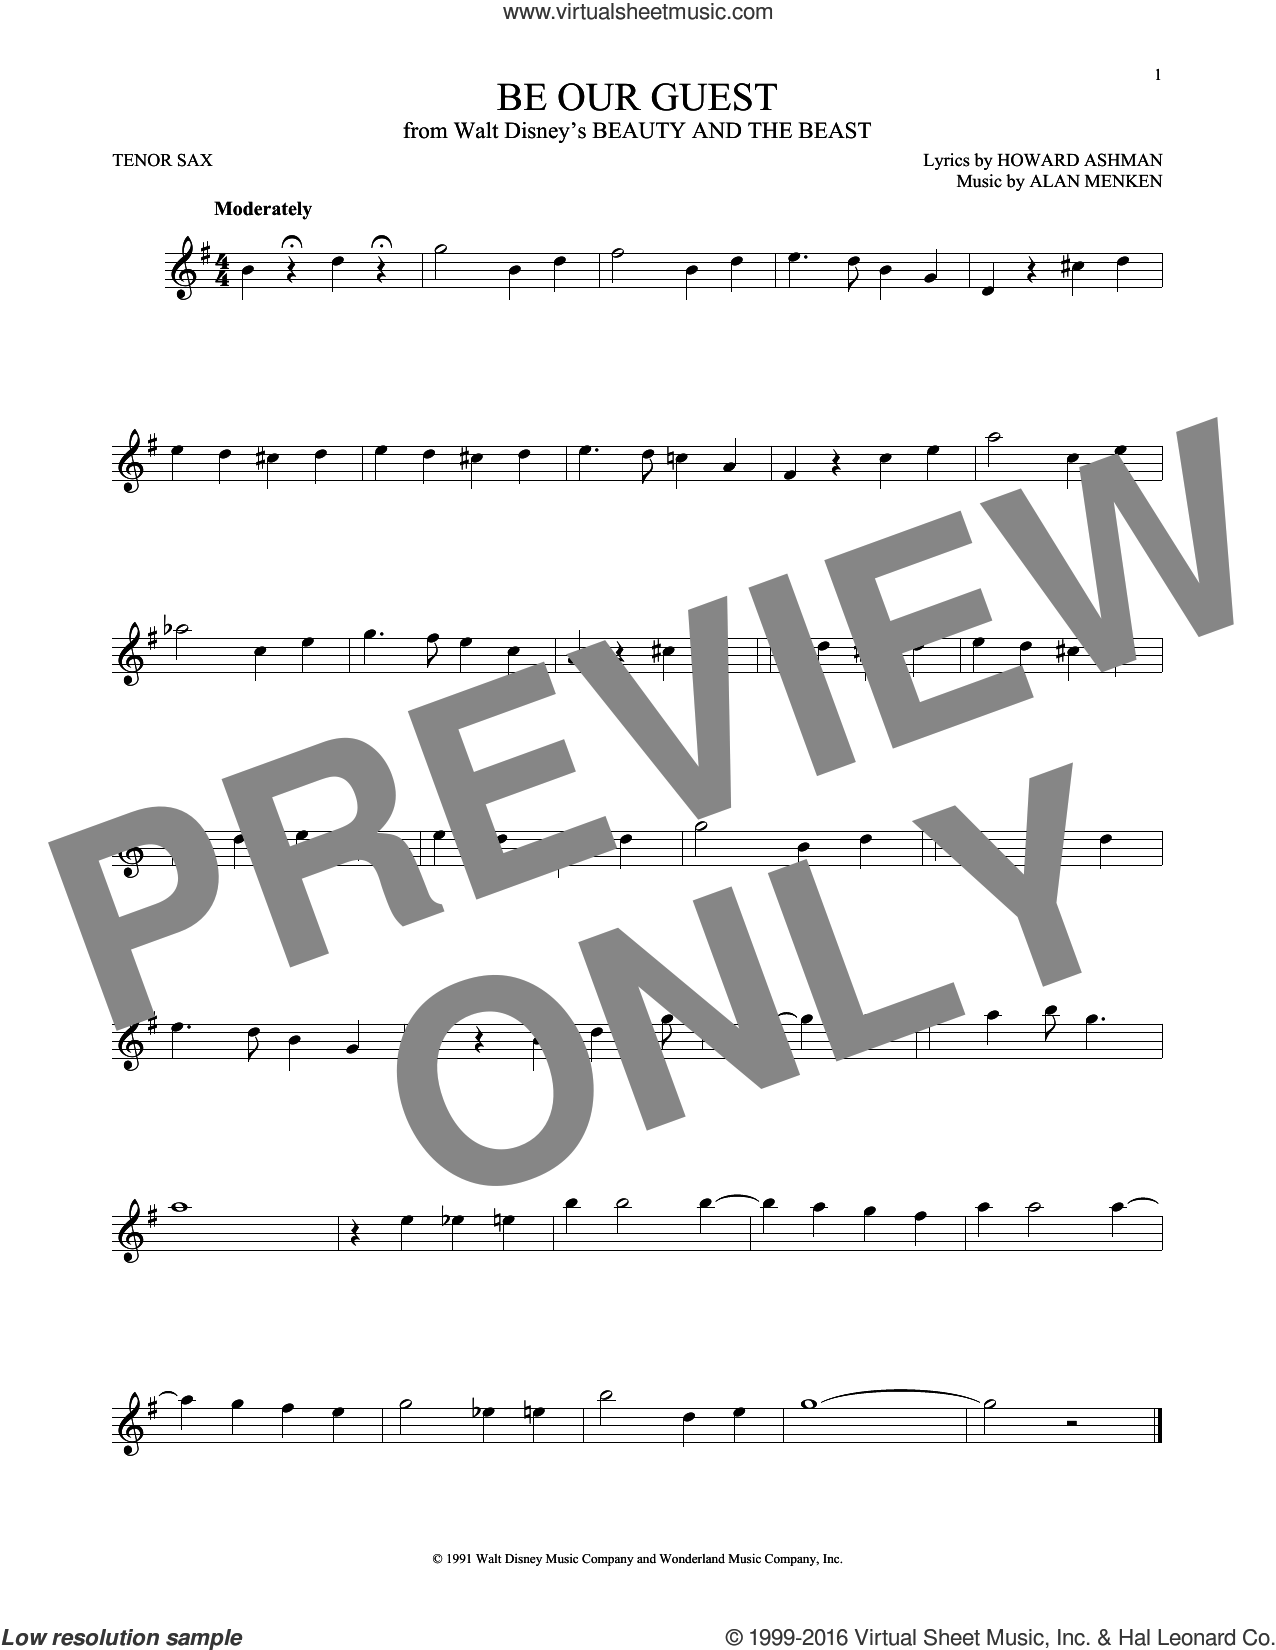 Be Our Guest (from Beauty And The Beast) sheet music for tenor saxophone solo by Alan Menken, Alan Menken & Howard Ashman and Howard Ashman, intermediate skill level